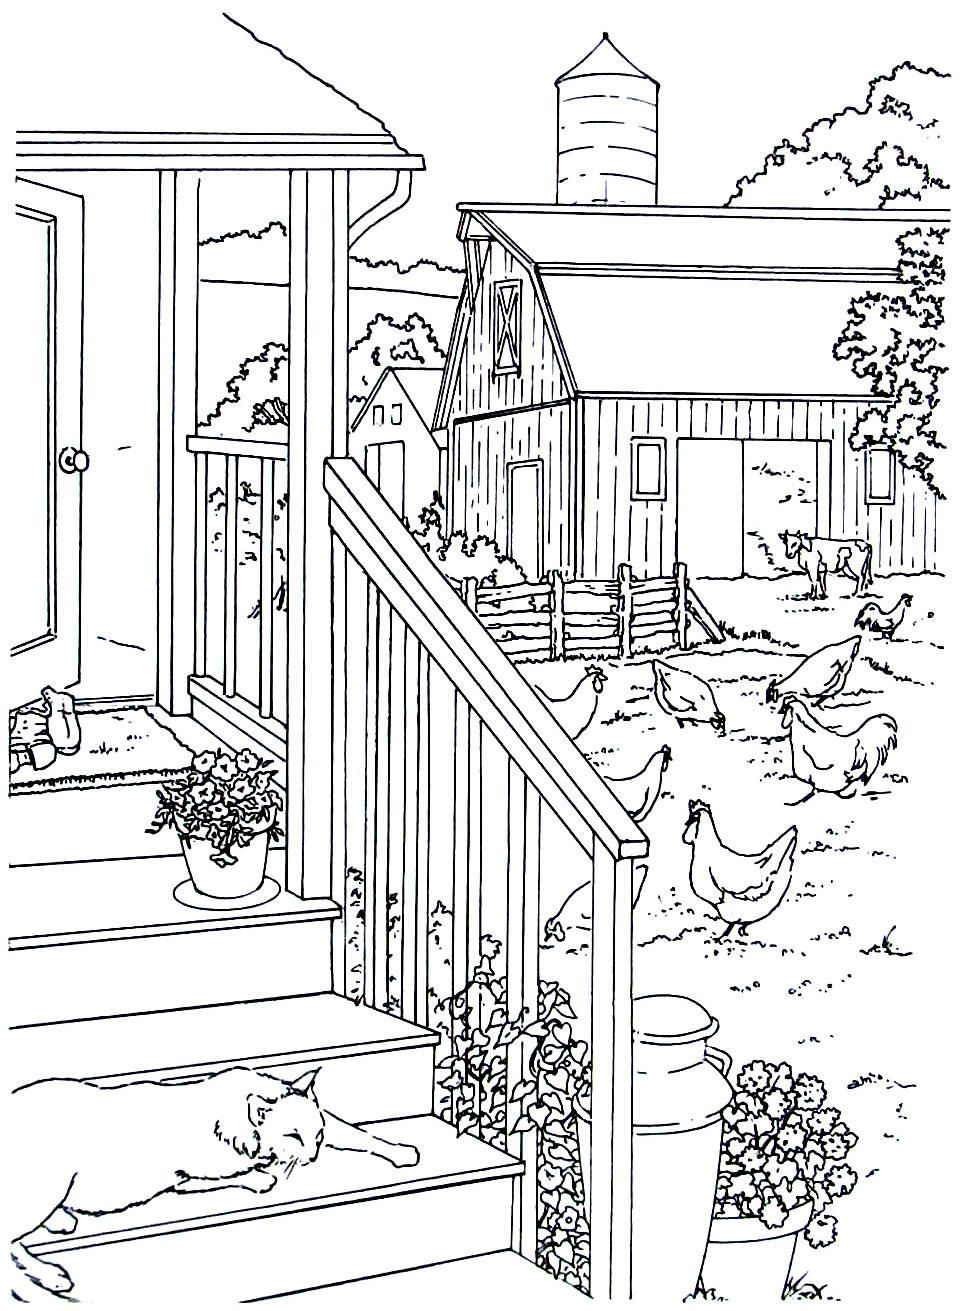 Free Coloring Pages Download Country House With Chickens Living In The Book Of